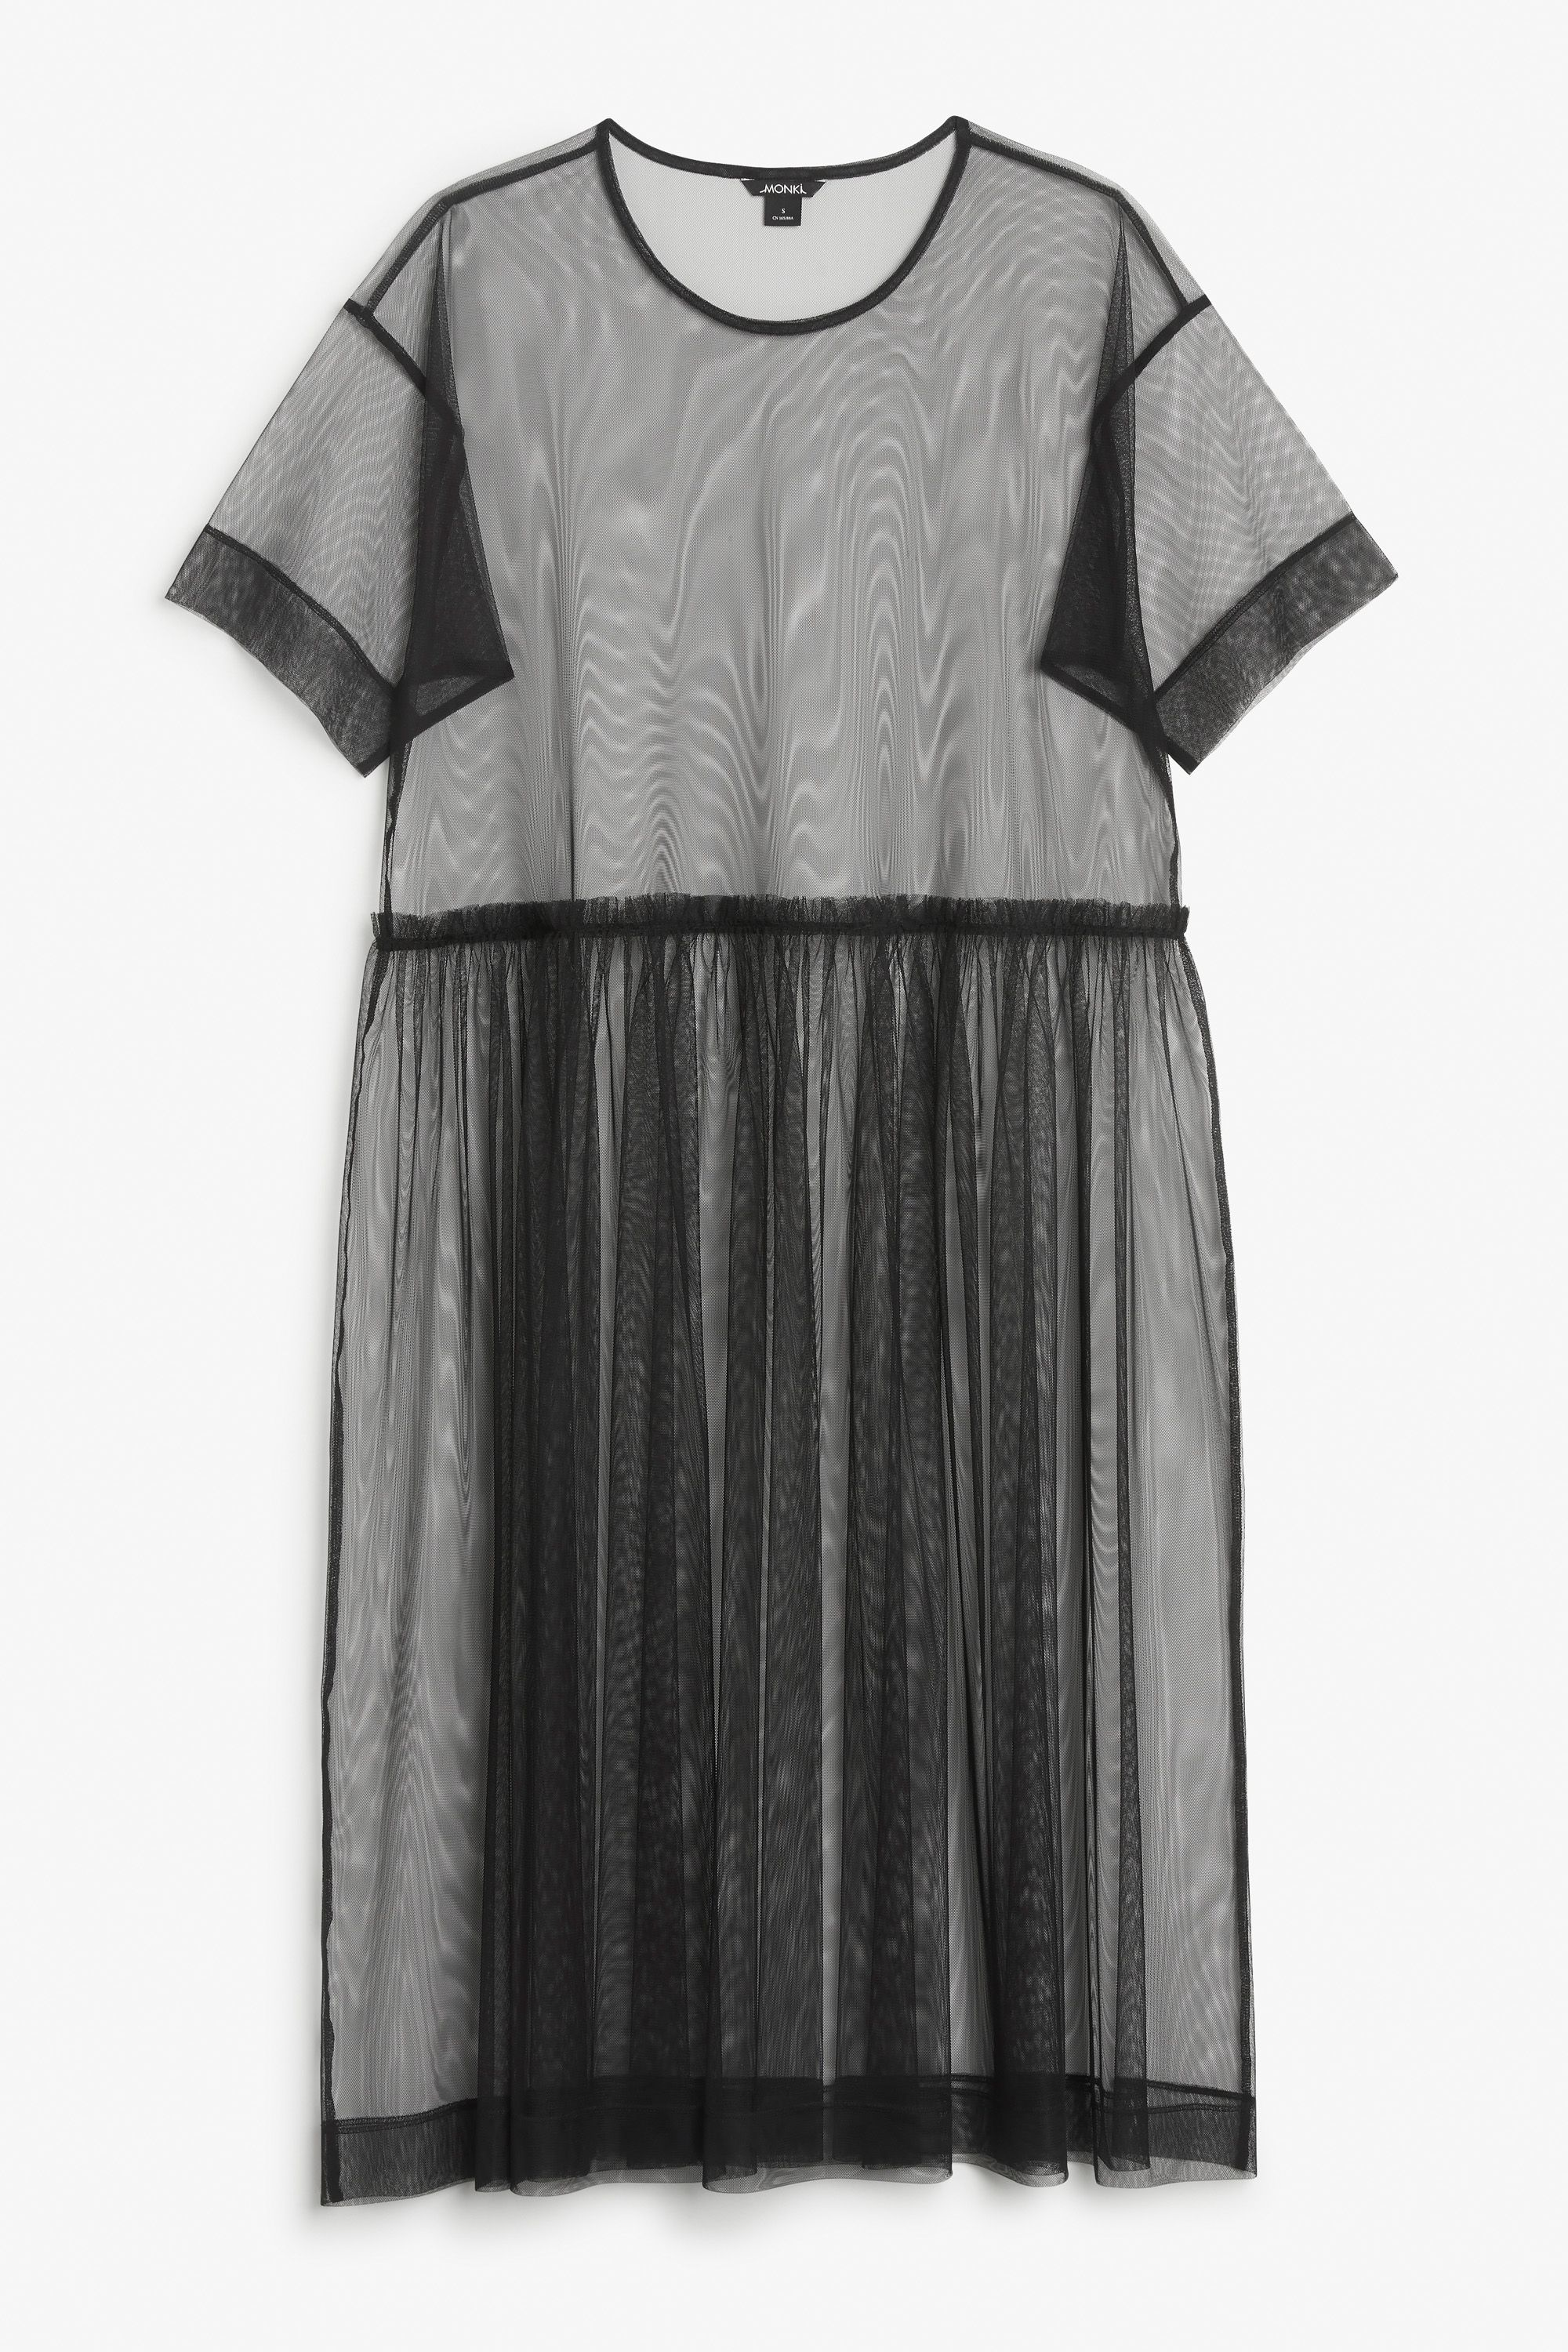 1dde39f8b27c A barely-there wide fitting mesh dress to throw on over whatever you will.